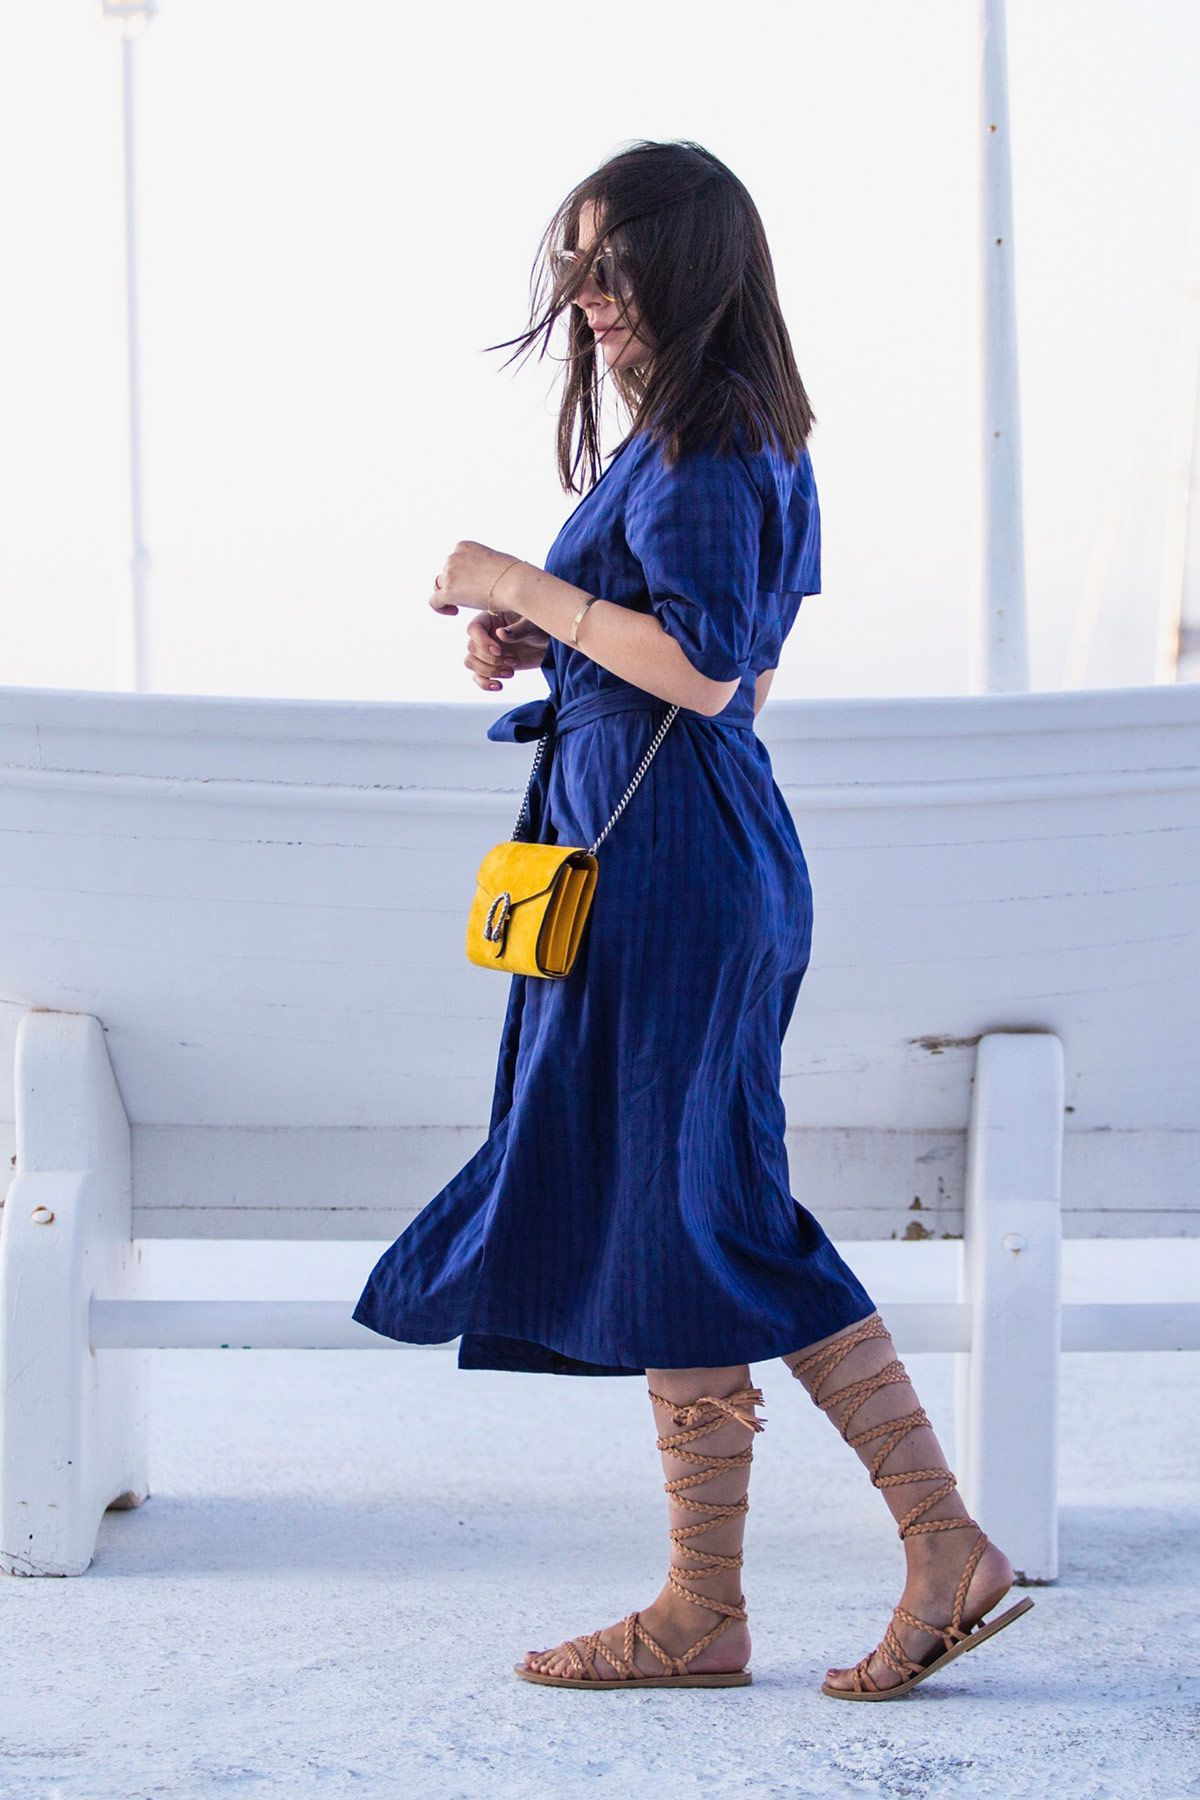 Stella Asteria wearing blue dress